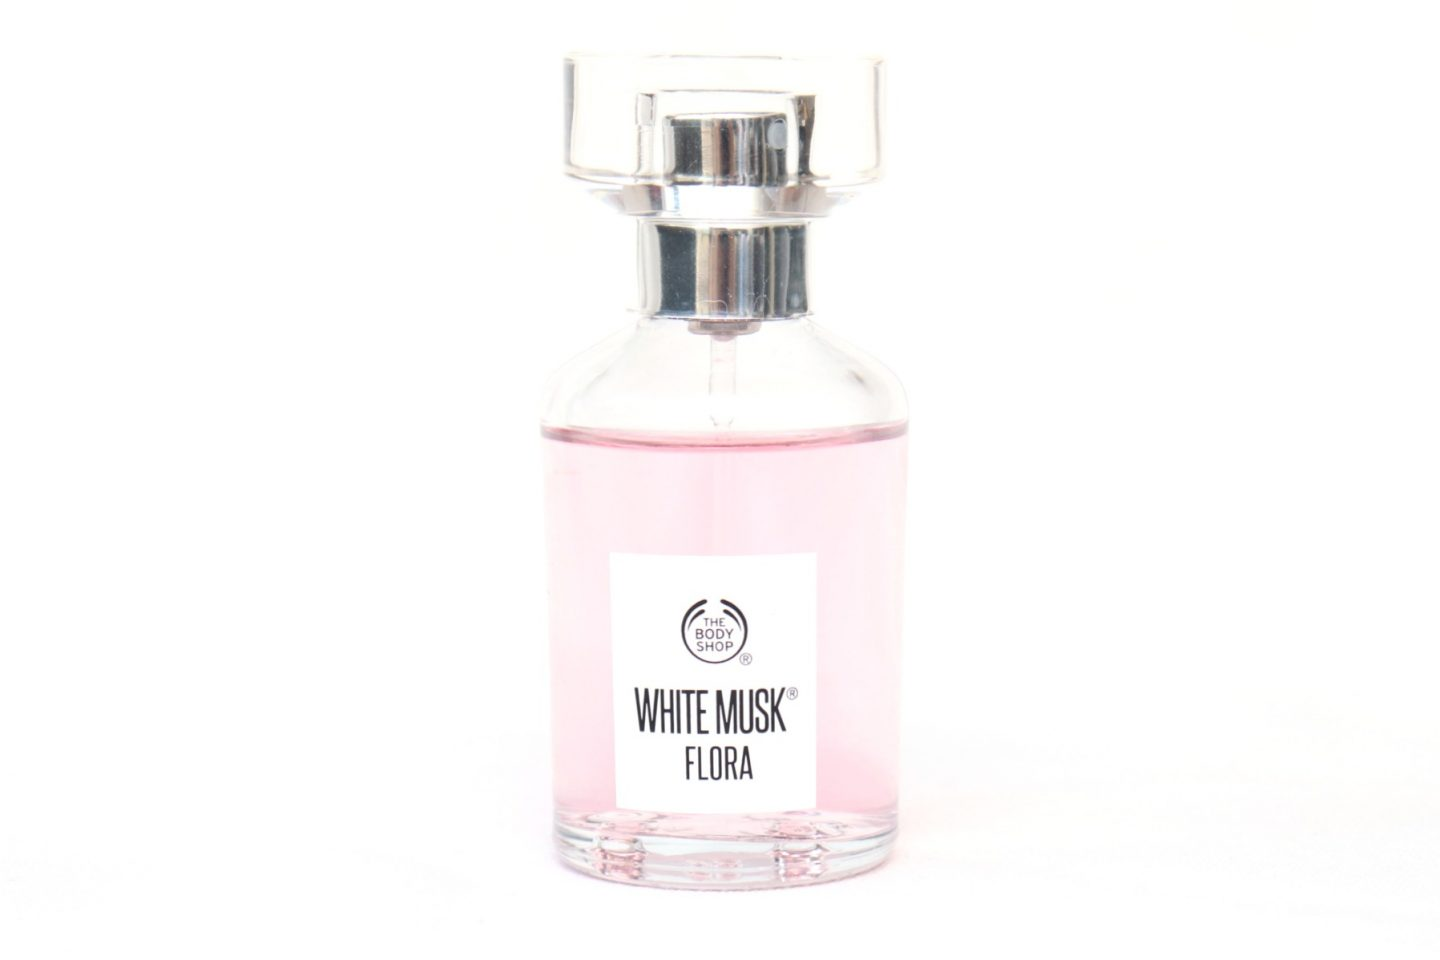 The Body Shop White Musk Flora Eau de Toilette Review